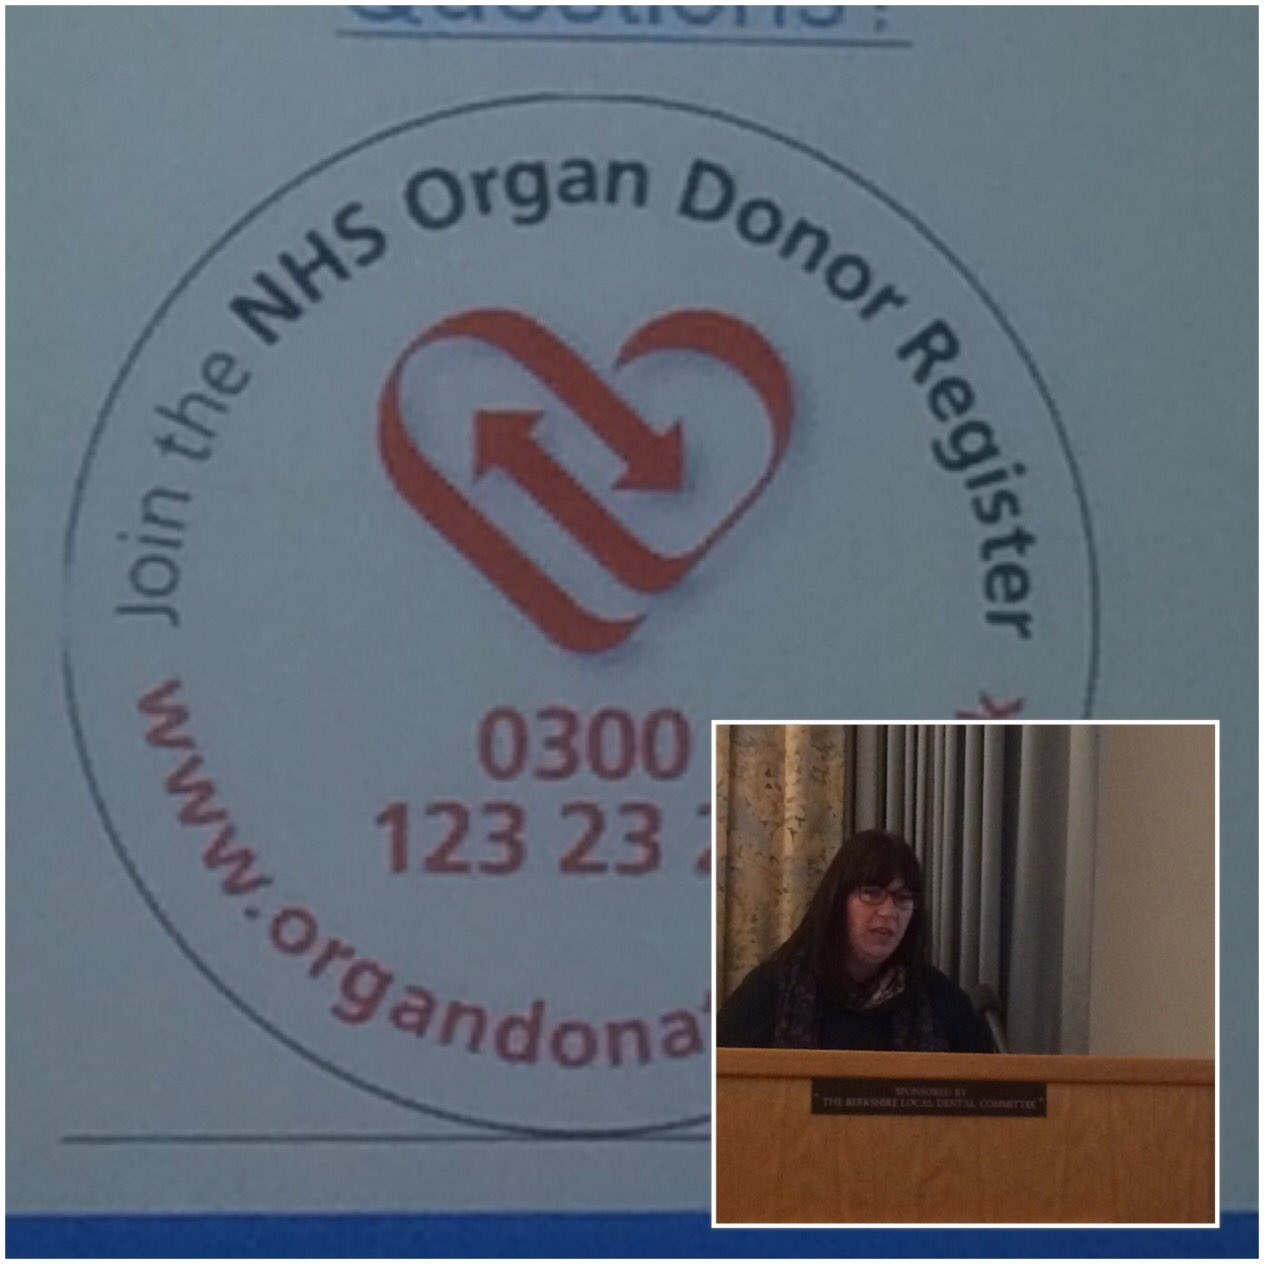 Leigh talking about Organ Donation Experience and Future... @BACCNUK #CSEol #BACCNCS @NHSOrganDonor https://t.co/7oiHEWOBbD